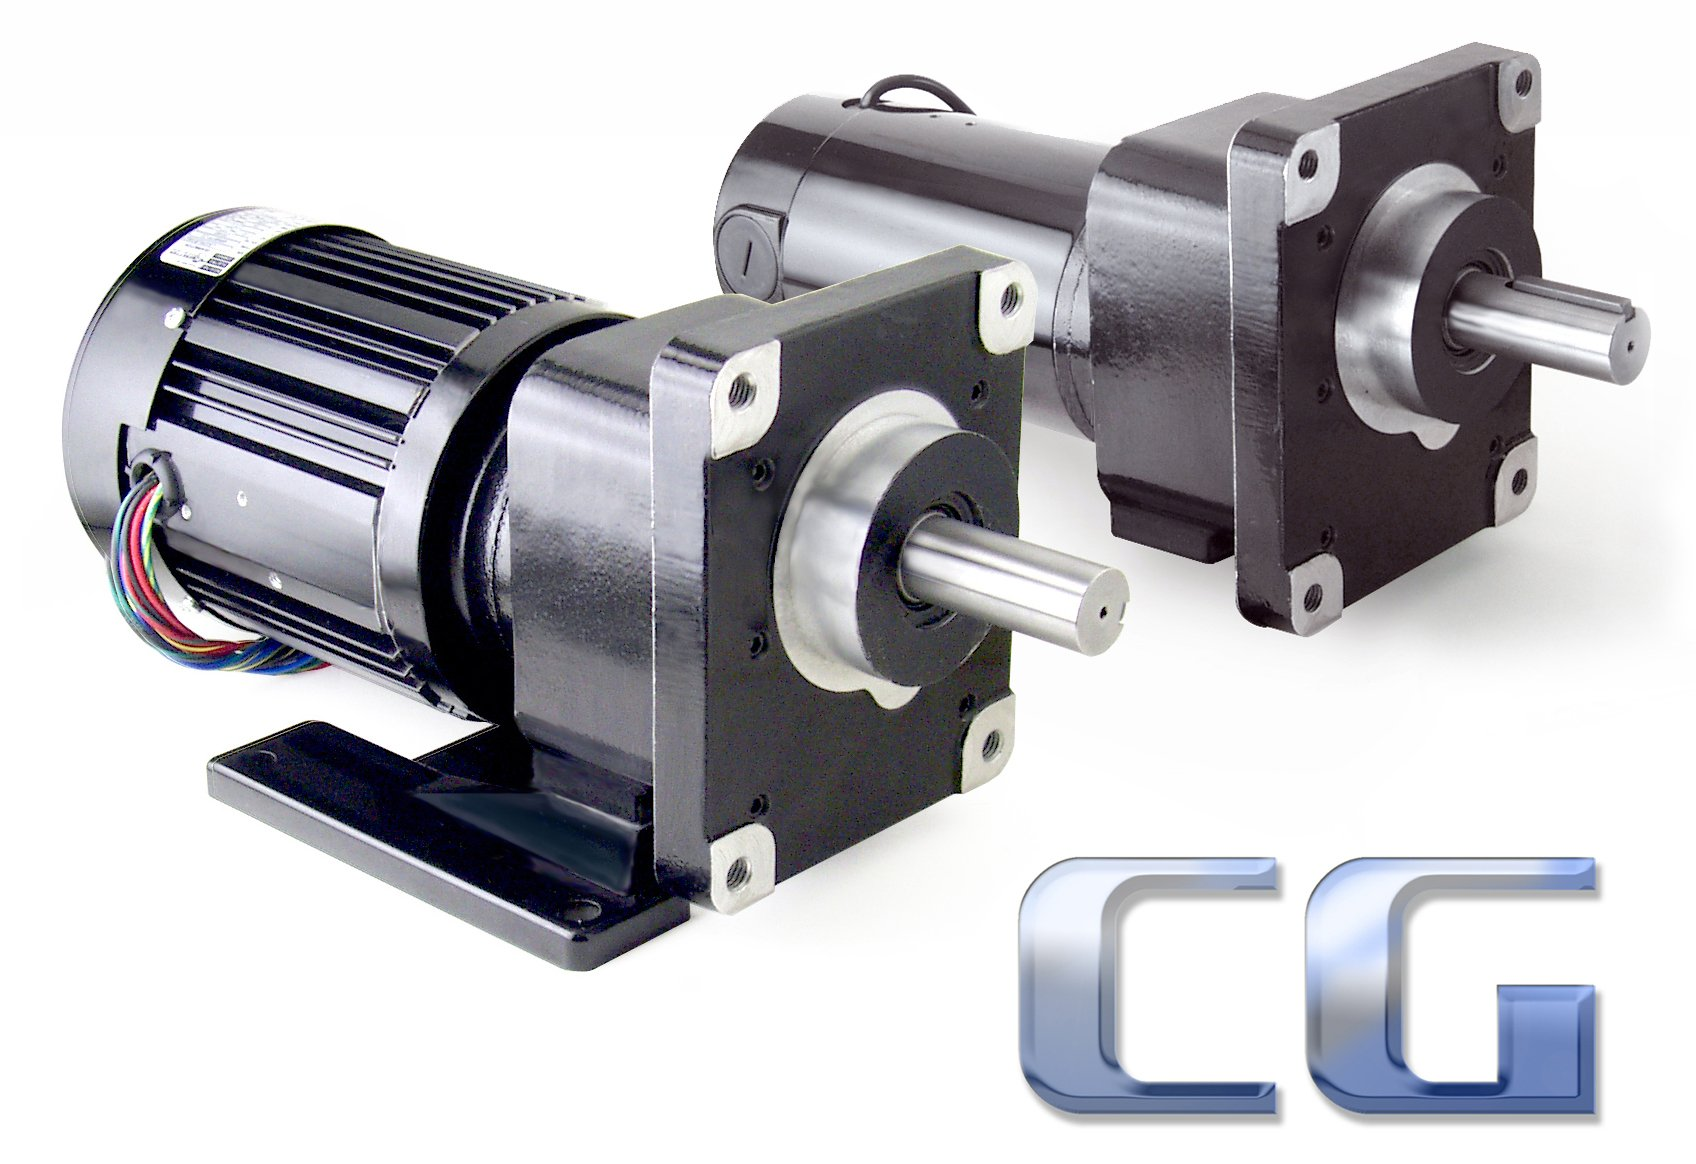 Upgraded and expanded cg gearmotor selection bodine Gearbox motors